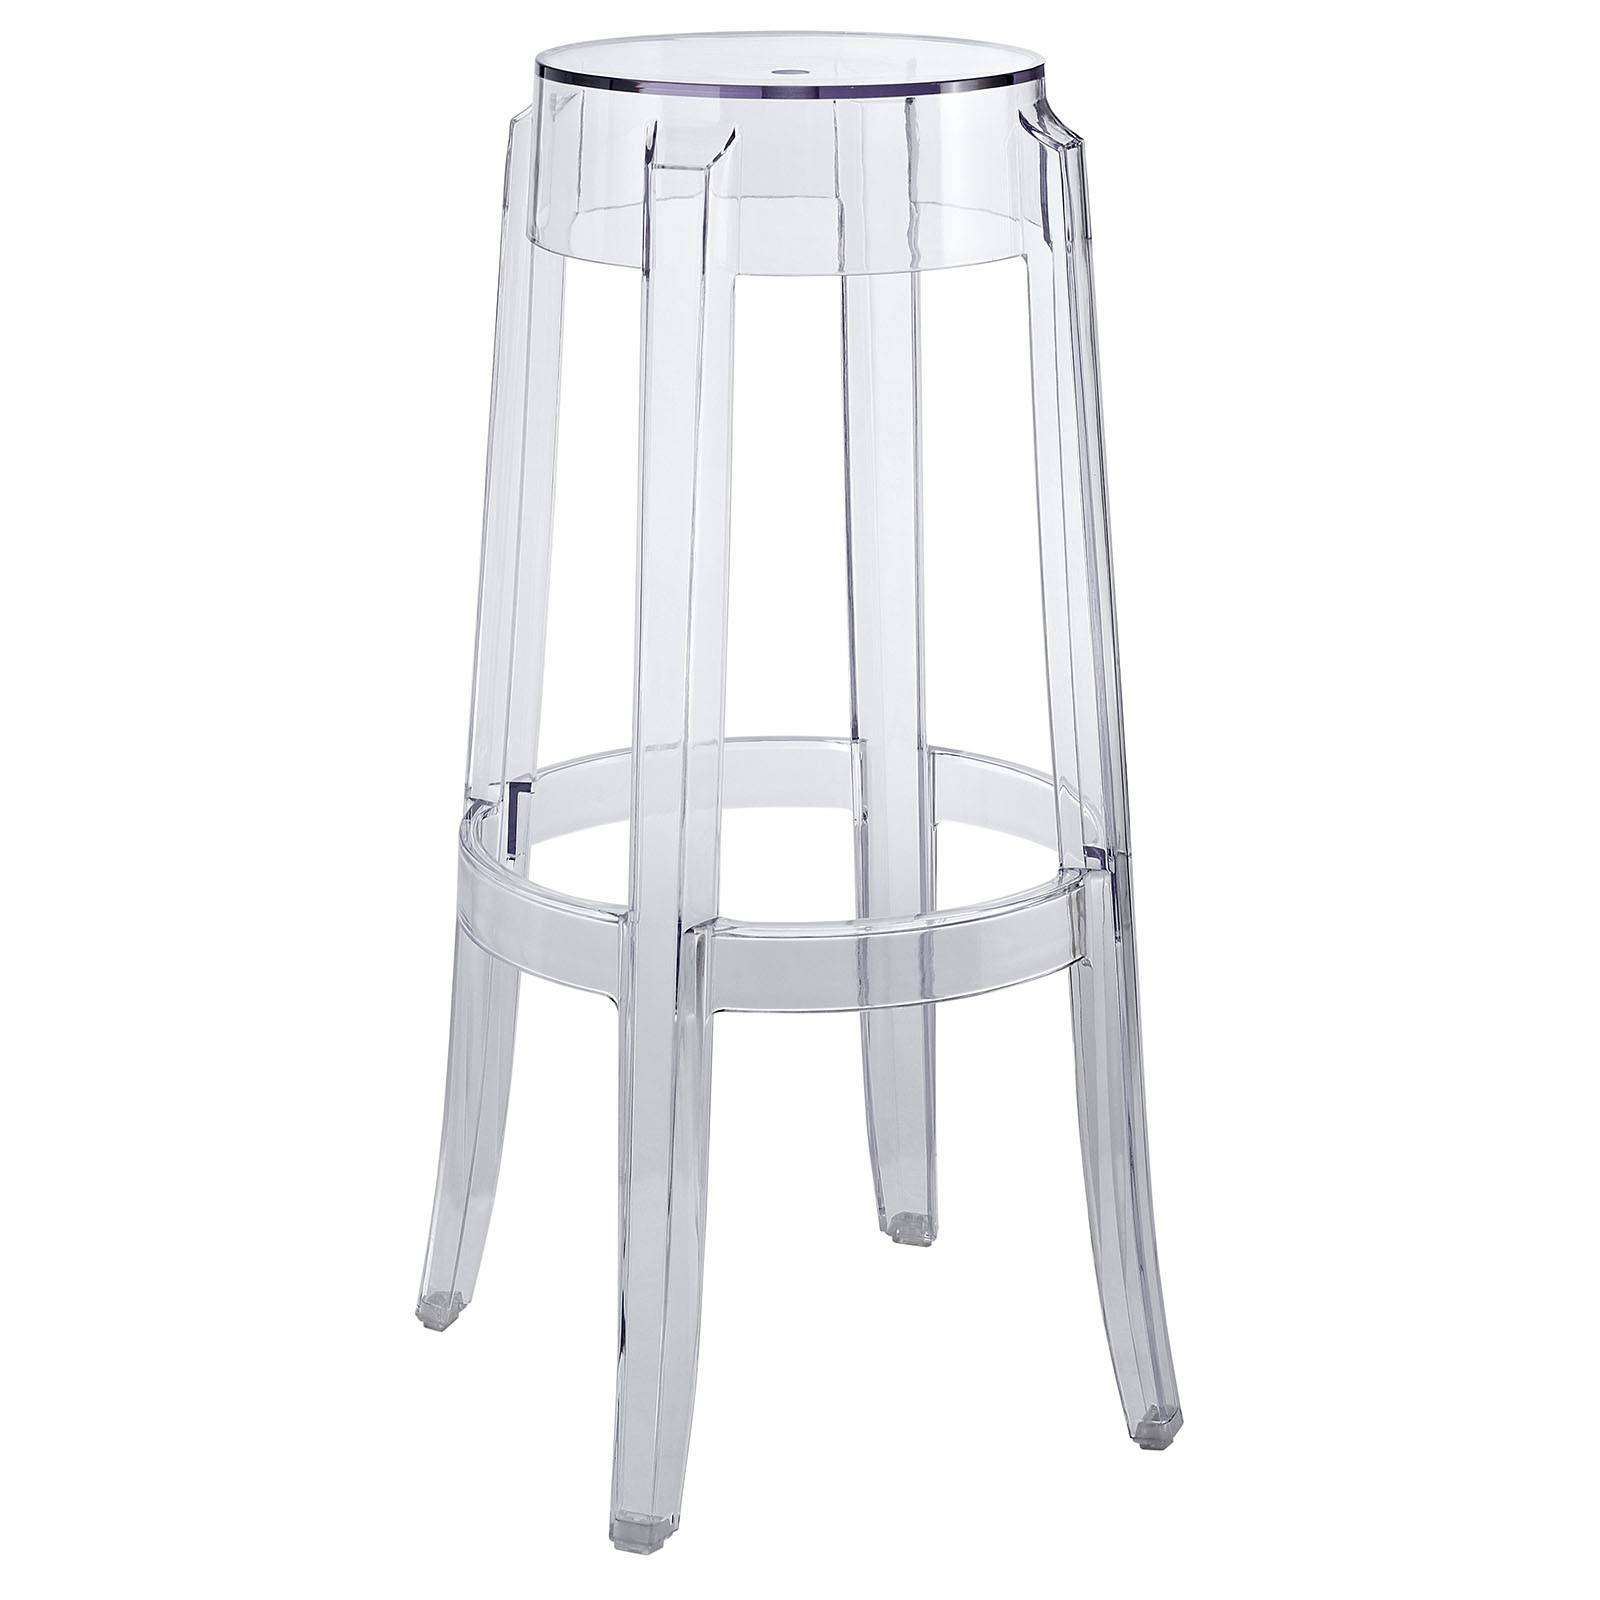 ghost chair bar stool ergonomic grand and toy philippe starck style charles